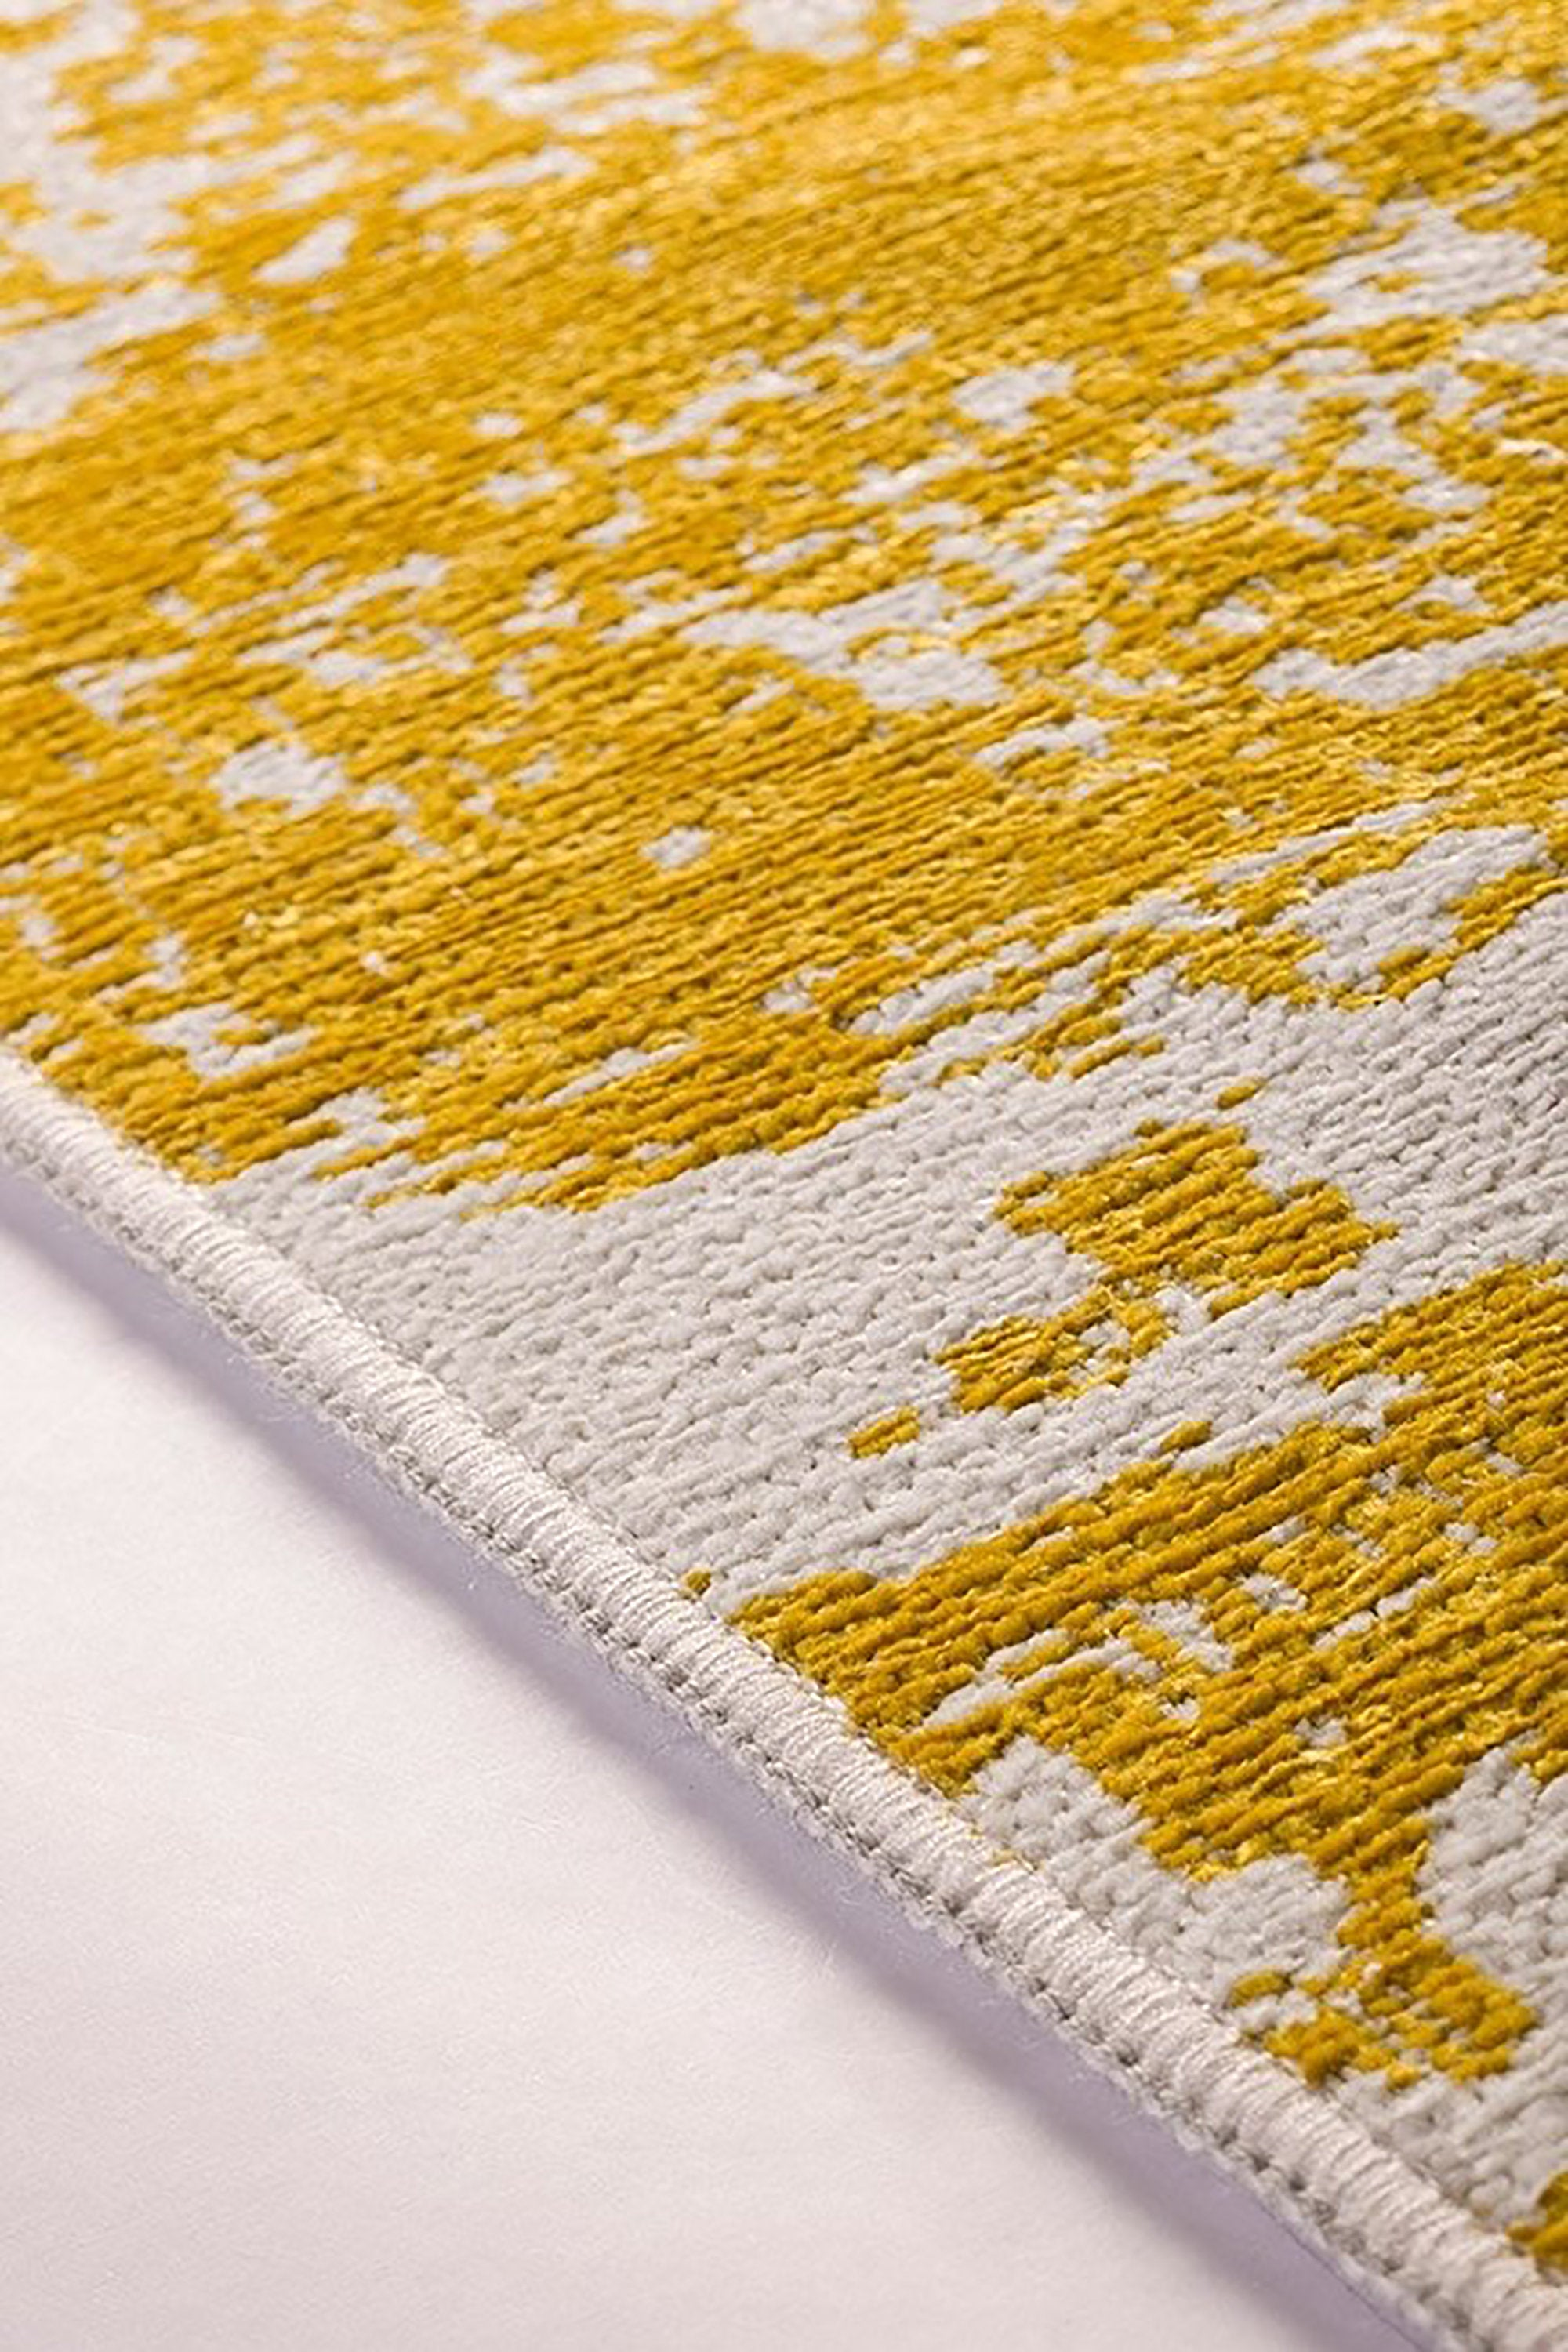 MAKA | Abstract Kilim Runner, Reversible Double Sided Flatweave Modern Runner, Hallway Decor, Gray, Yellow, 2 Side, Luxury look Washable Rug